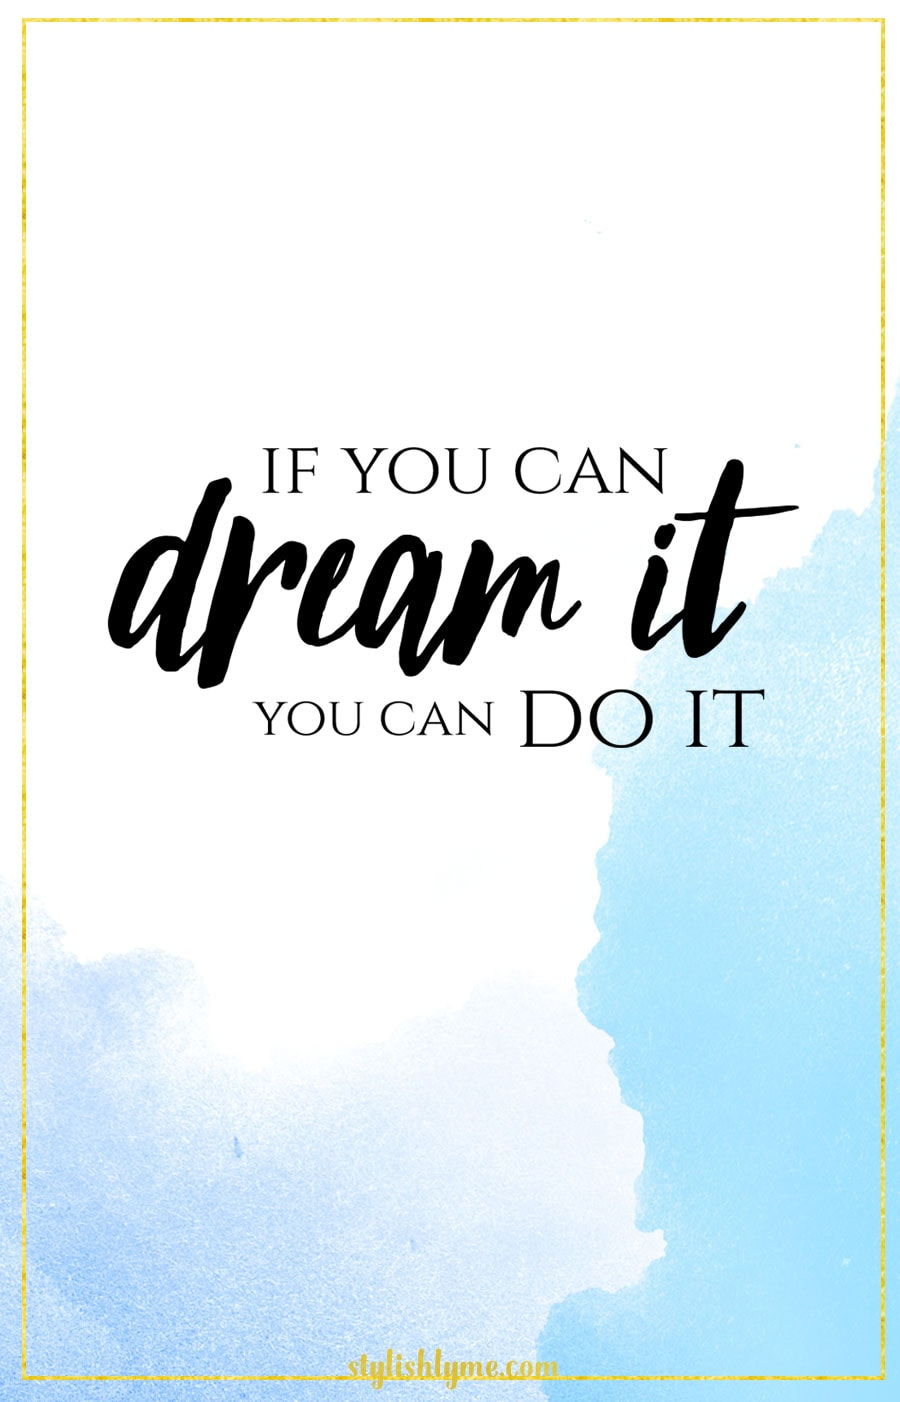 Cute quotes for your inspiration